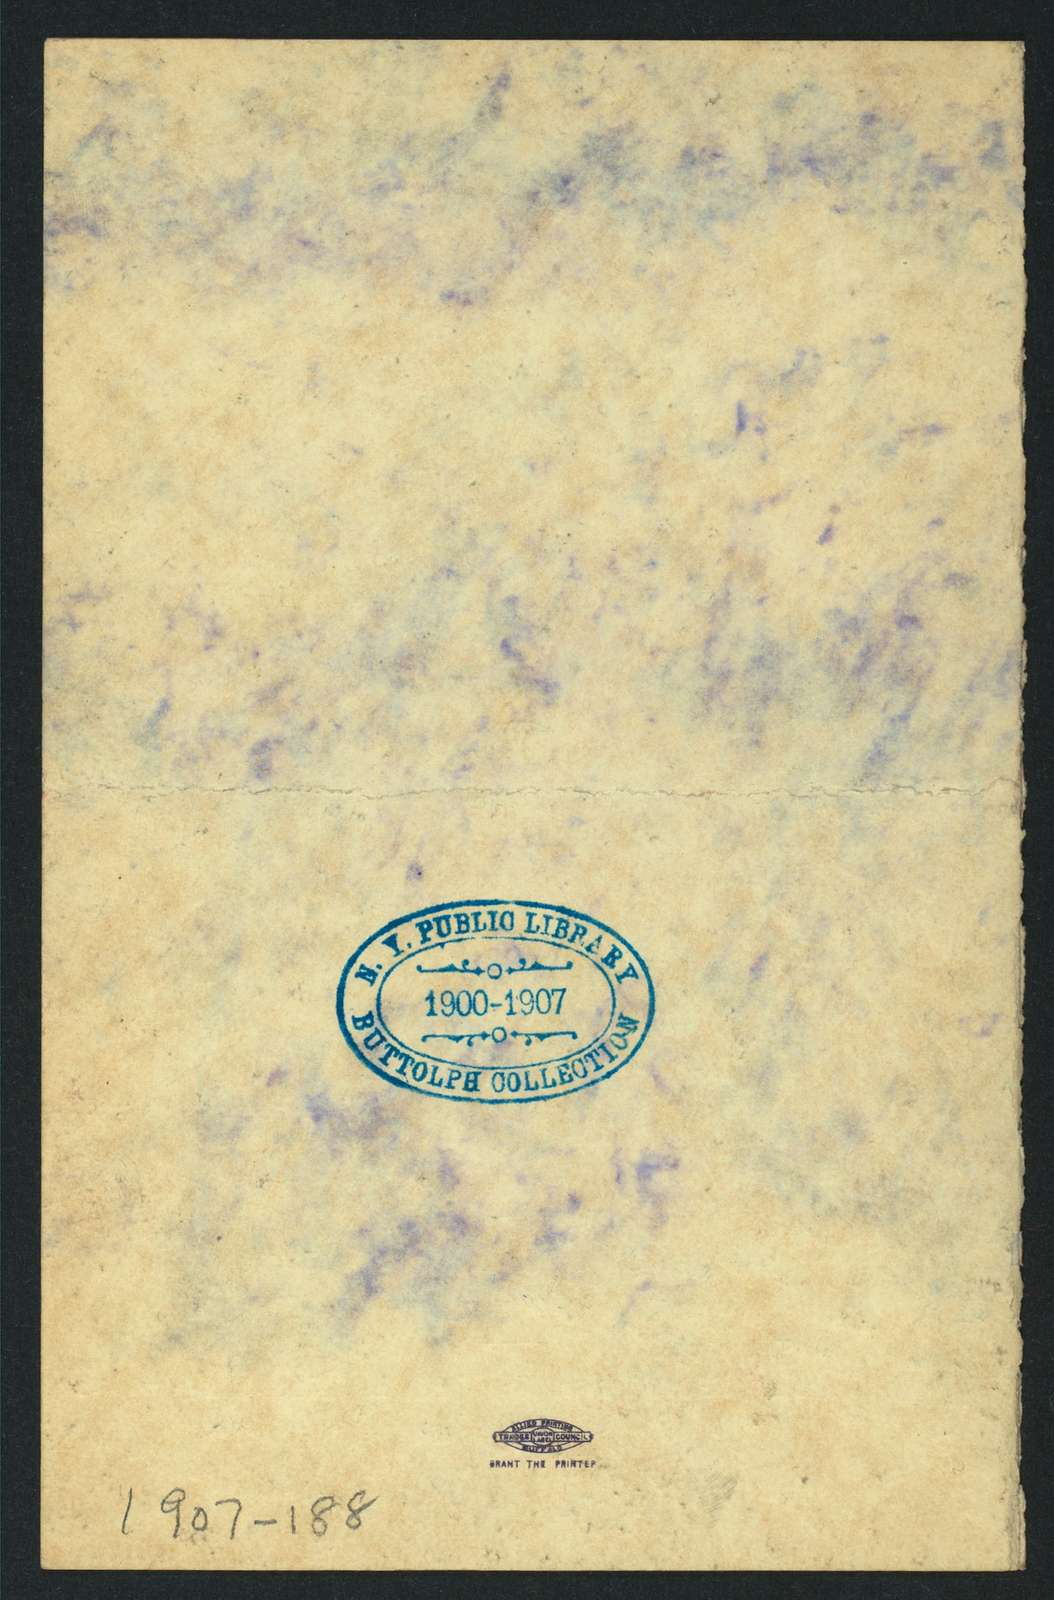 """DINNER [held by] B.P.O.E. [at] """"CONVENTION HALL, BUFFALO, NY"""" (OTHER (PRIVATE CLUB);)"""